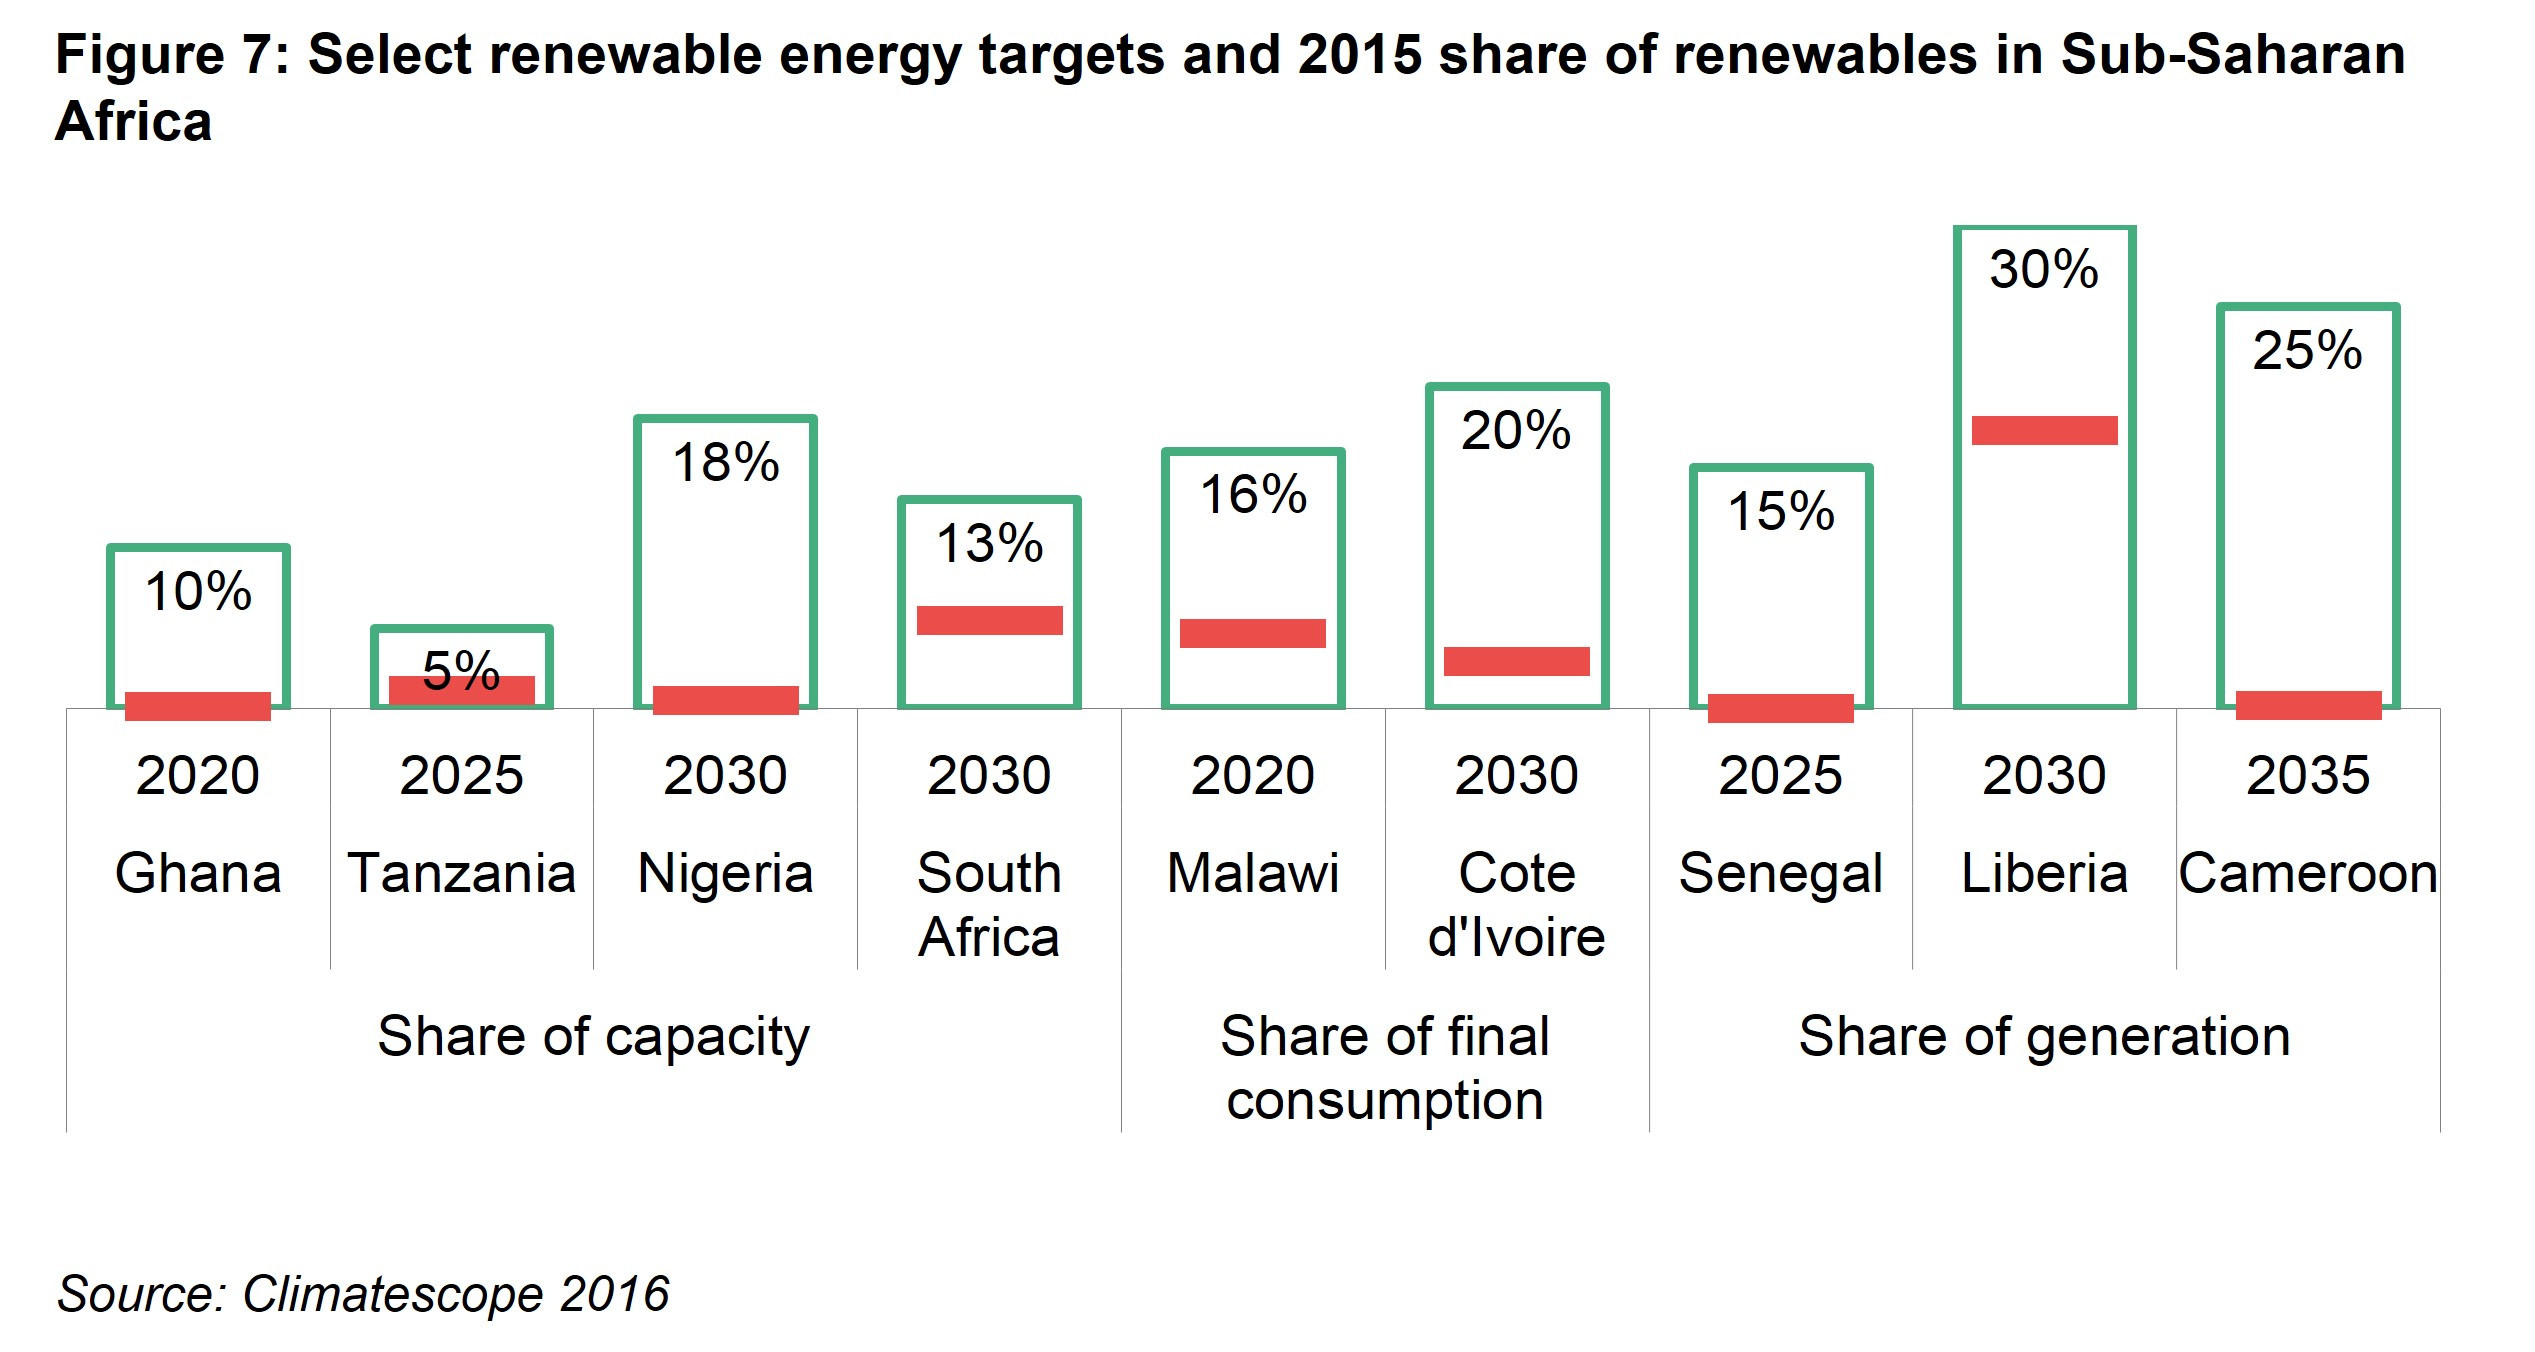 AM Fig 7 - Select renewable energy targets and 2015 share of renewables in Sub-Saharan Africa